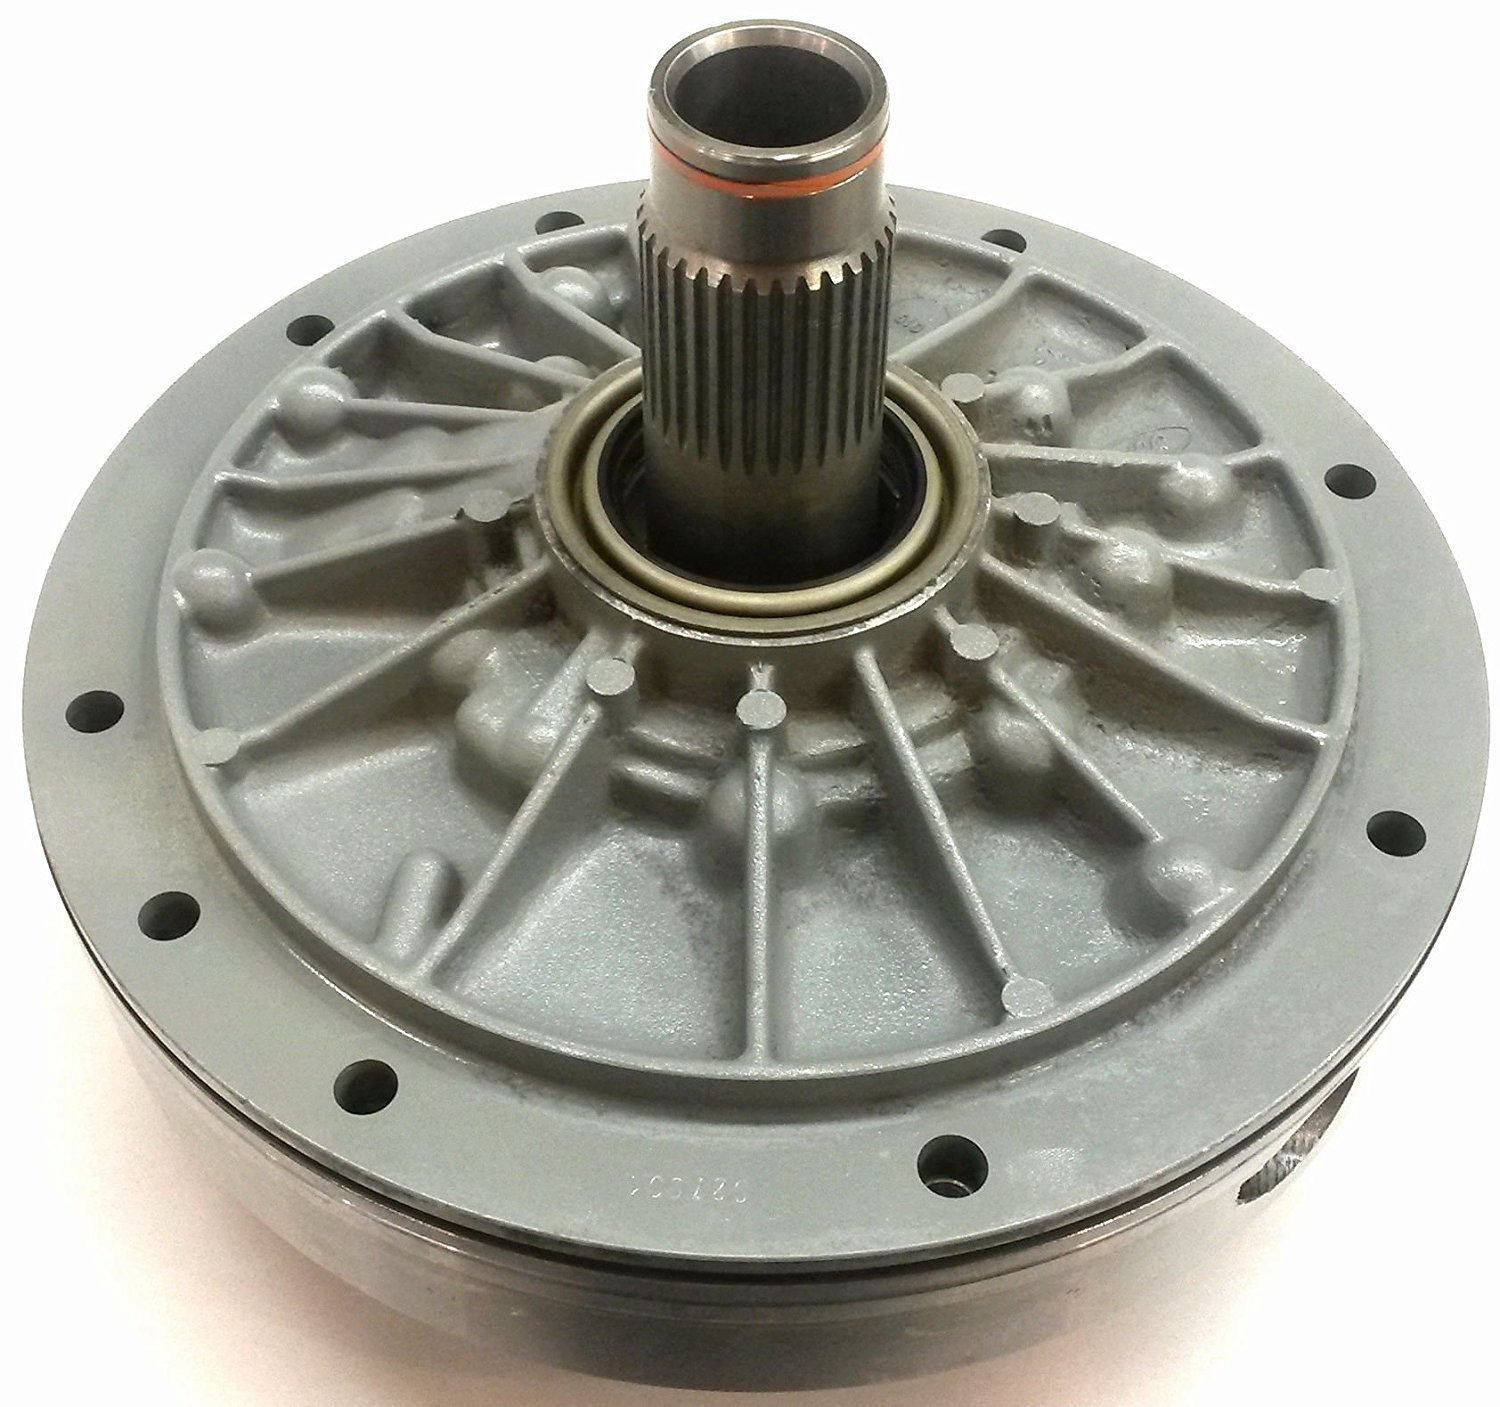 Shift Rite Transmissions replacement for 4R100 98-04 REBUILT PUMP ASSEMBLY TRANSMISSION (F8TP) NEW GEARS 4R100 Shift Rite